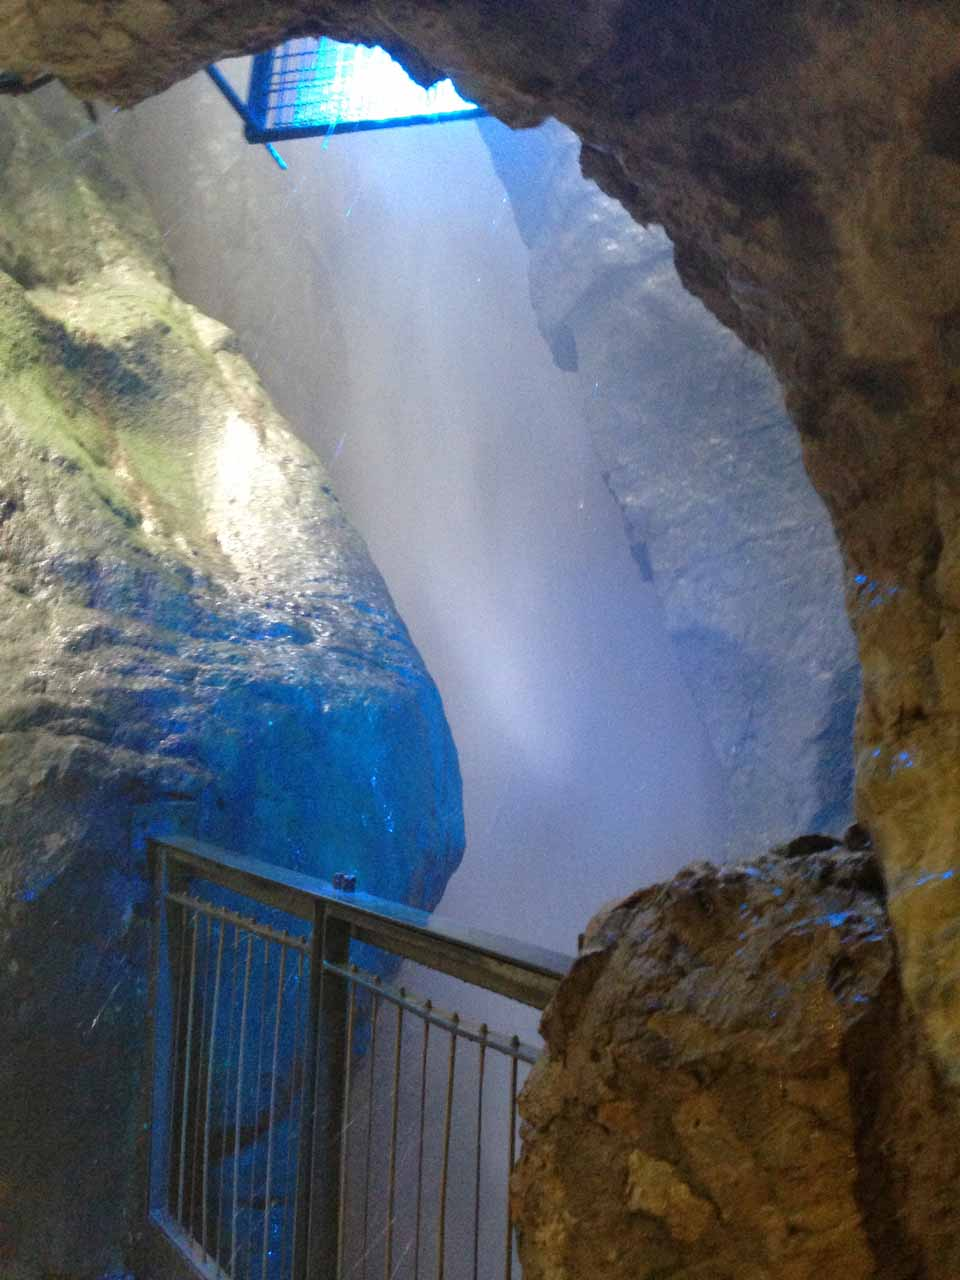 View of the Cascata del Varone from the upper cave but this time with blue floodlighting